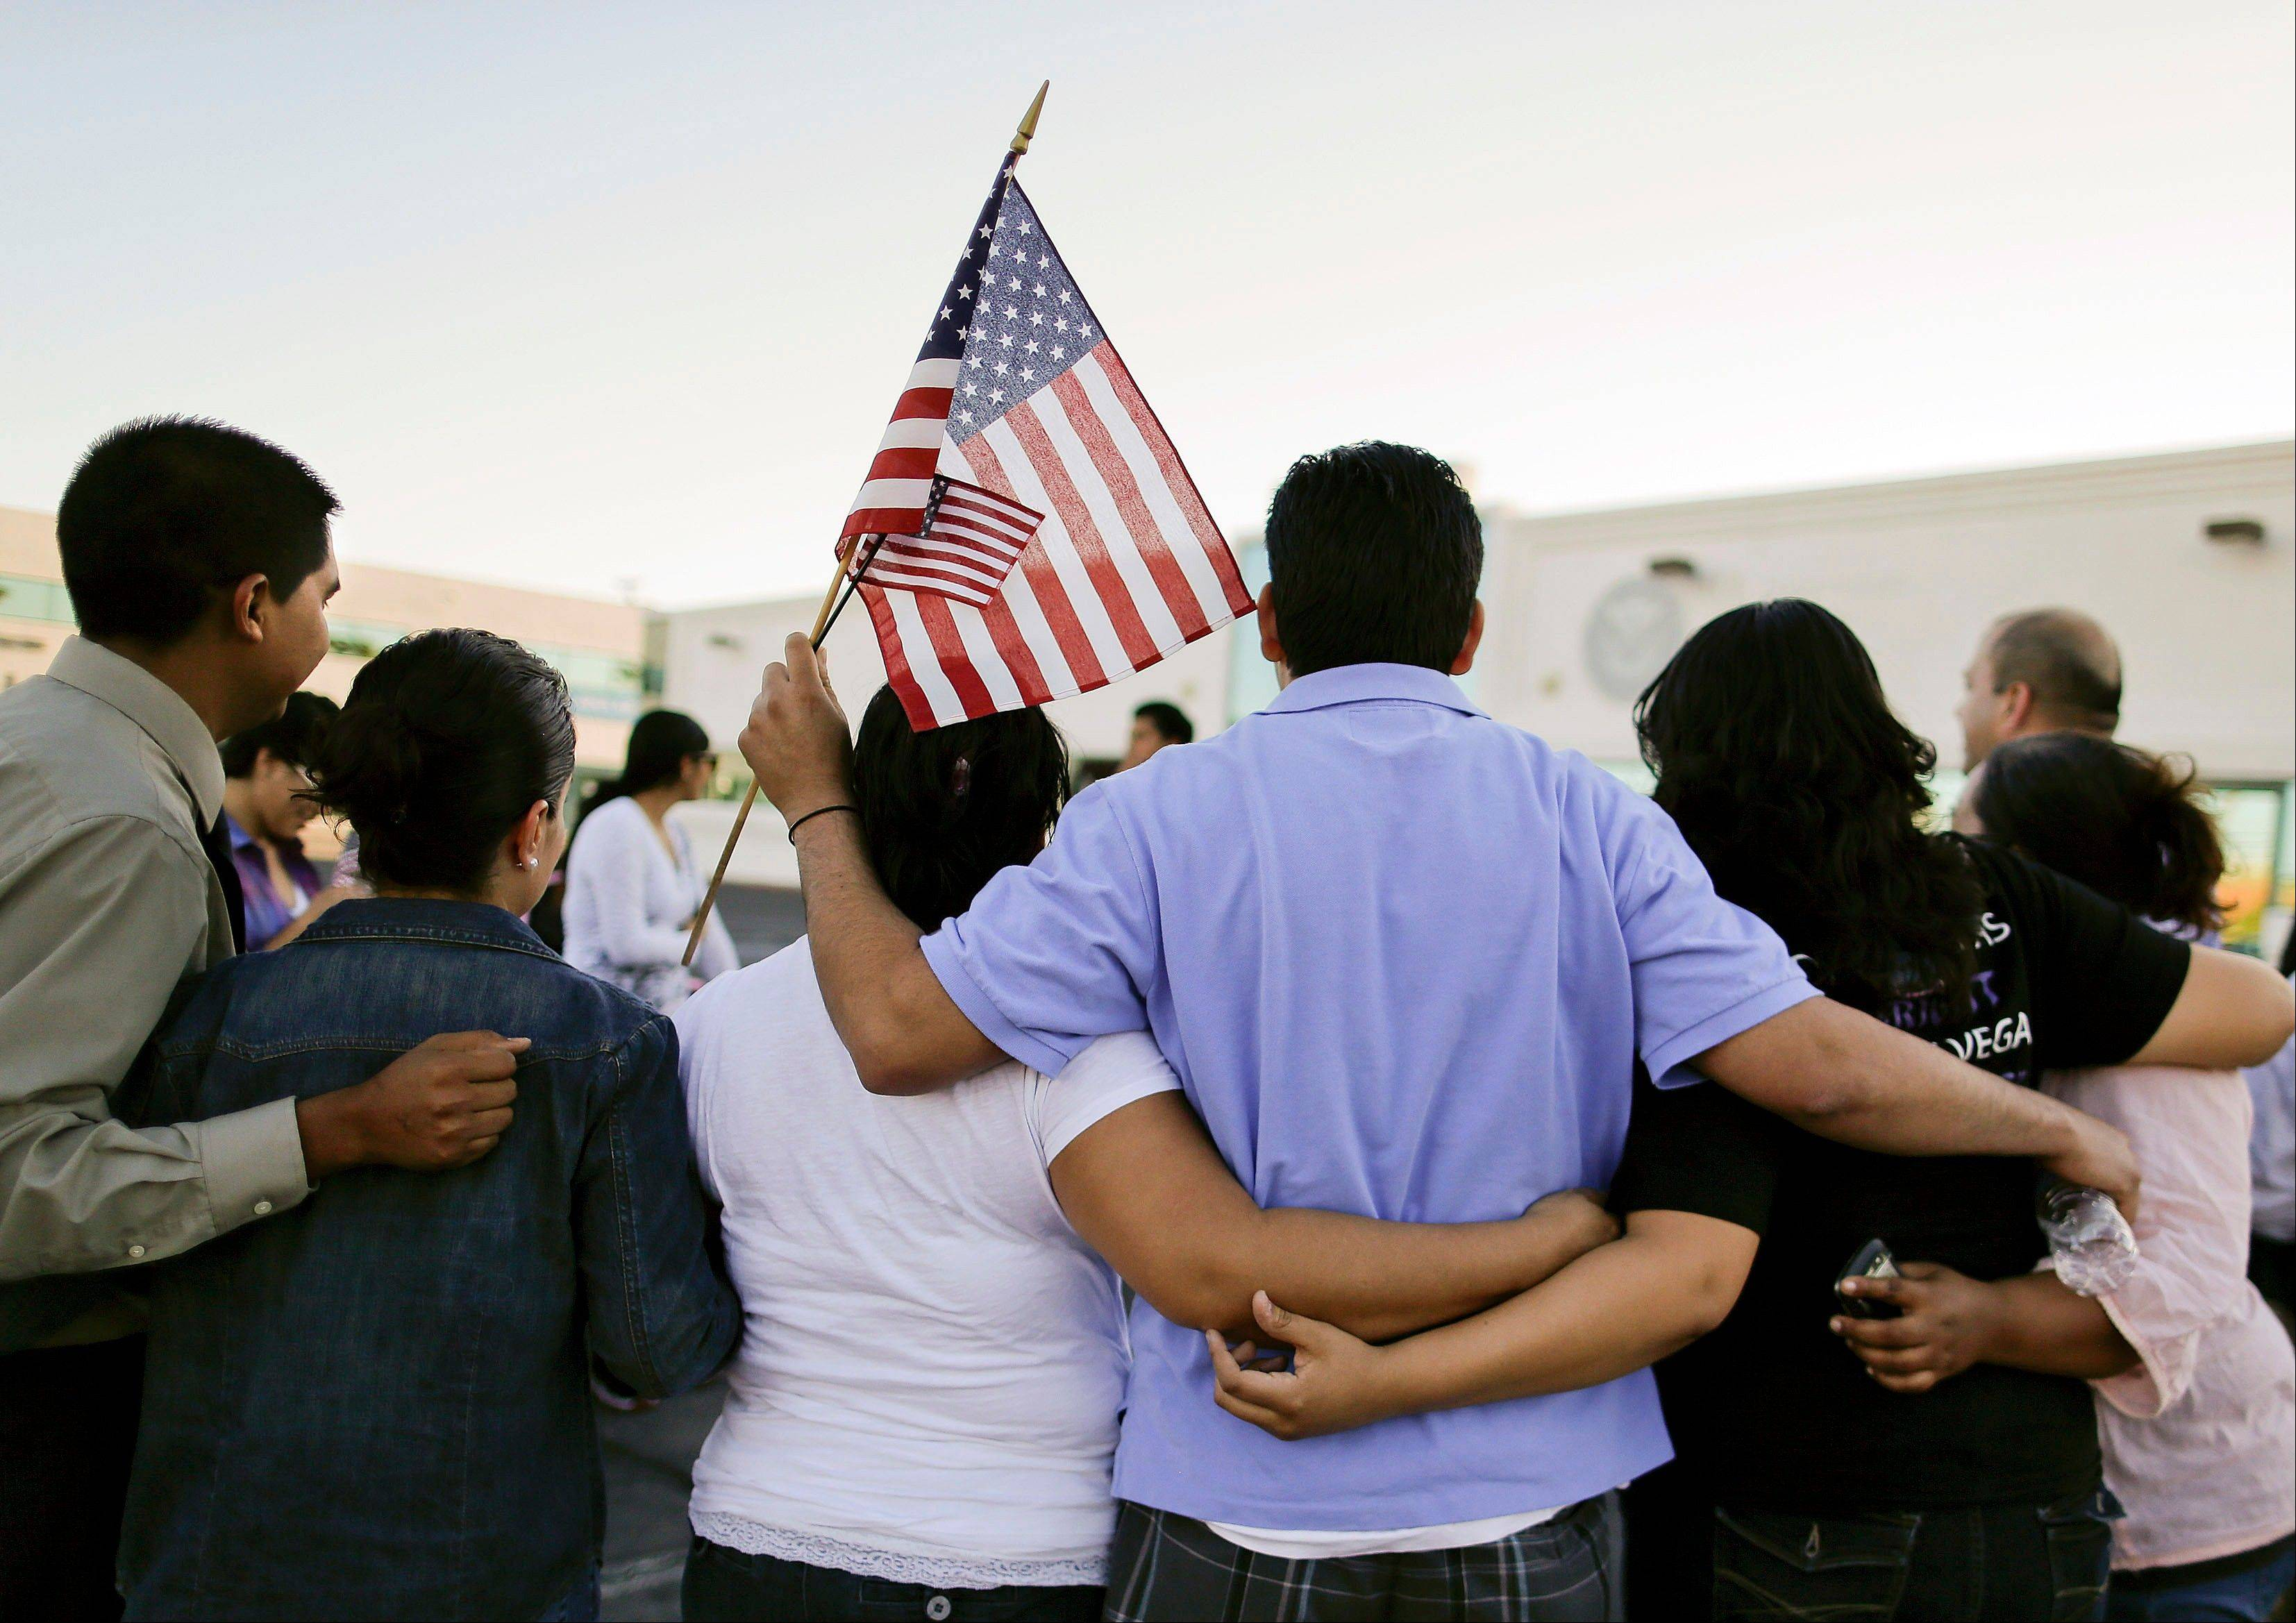 Martin Martinez, center, and his wife, Blanca Martinez, third from left, gather for a photo outside the Immigration and Customs Enforcement offices during an immigration vigil, Wednesday, in Las Vegas.